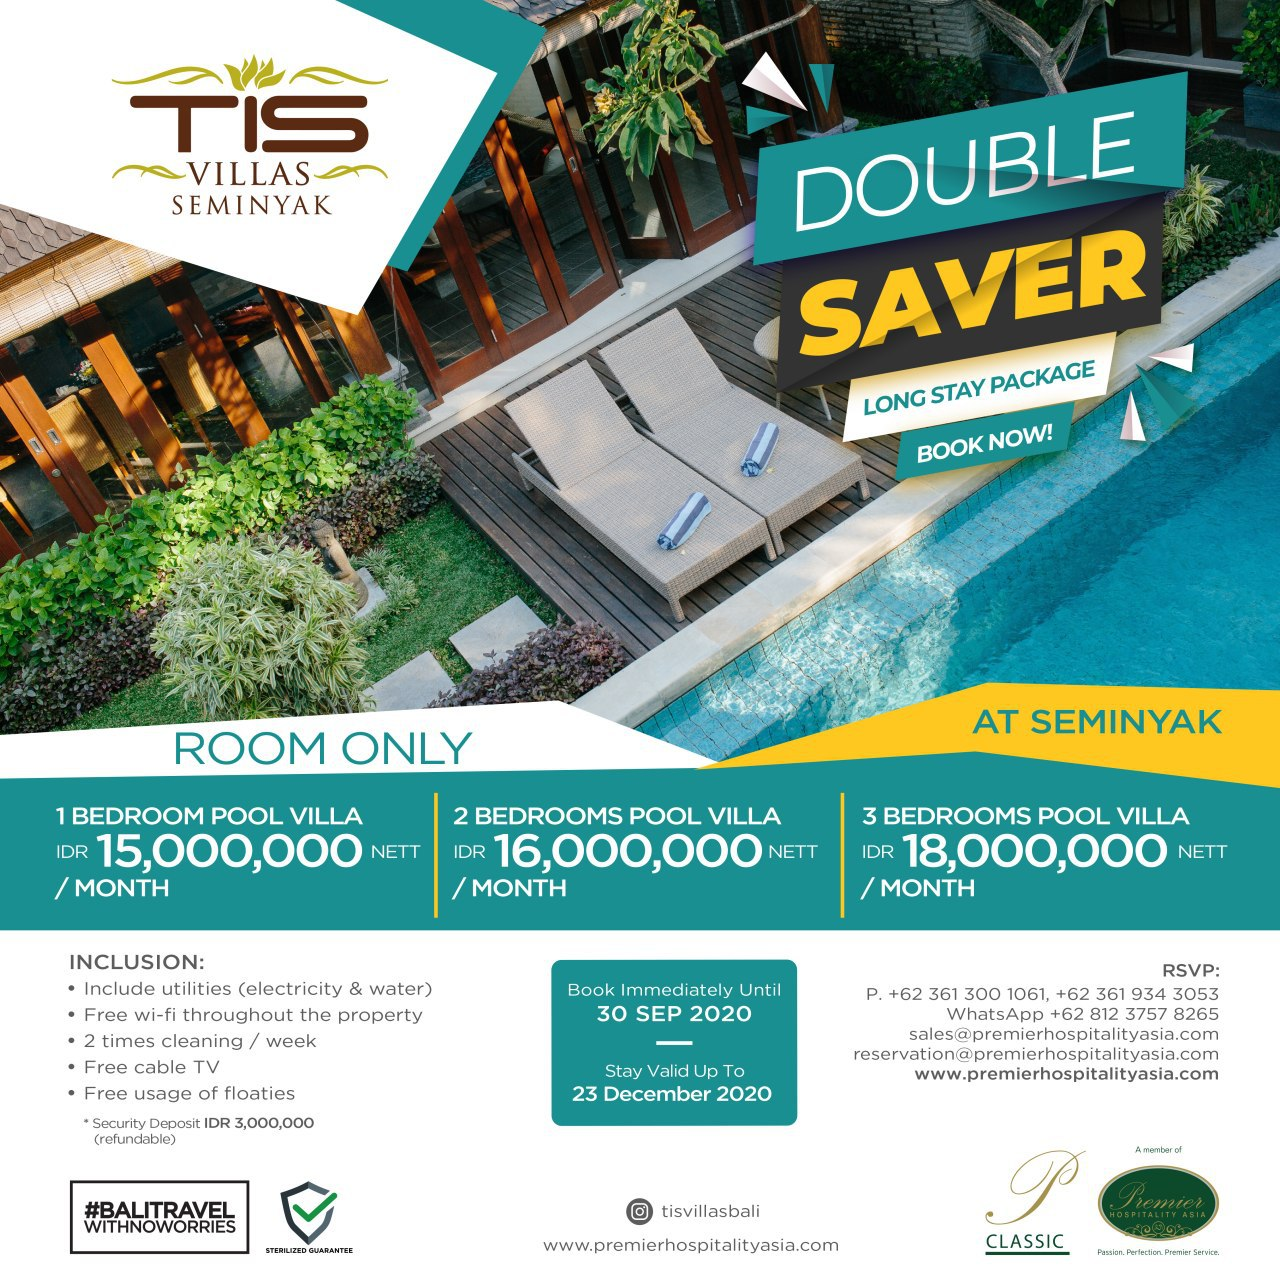 tis-villa-seminyak-3-bedroom-villa-bali-long-stay-long-term-package-monthly-rental